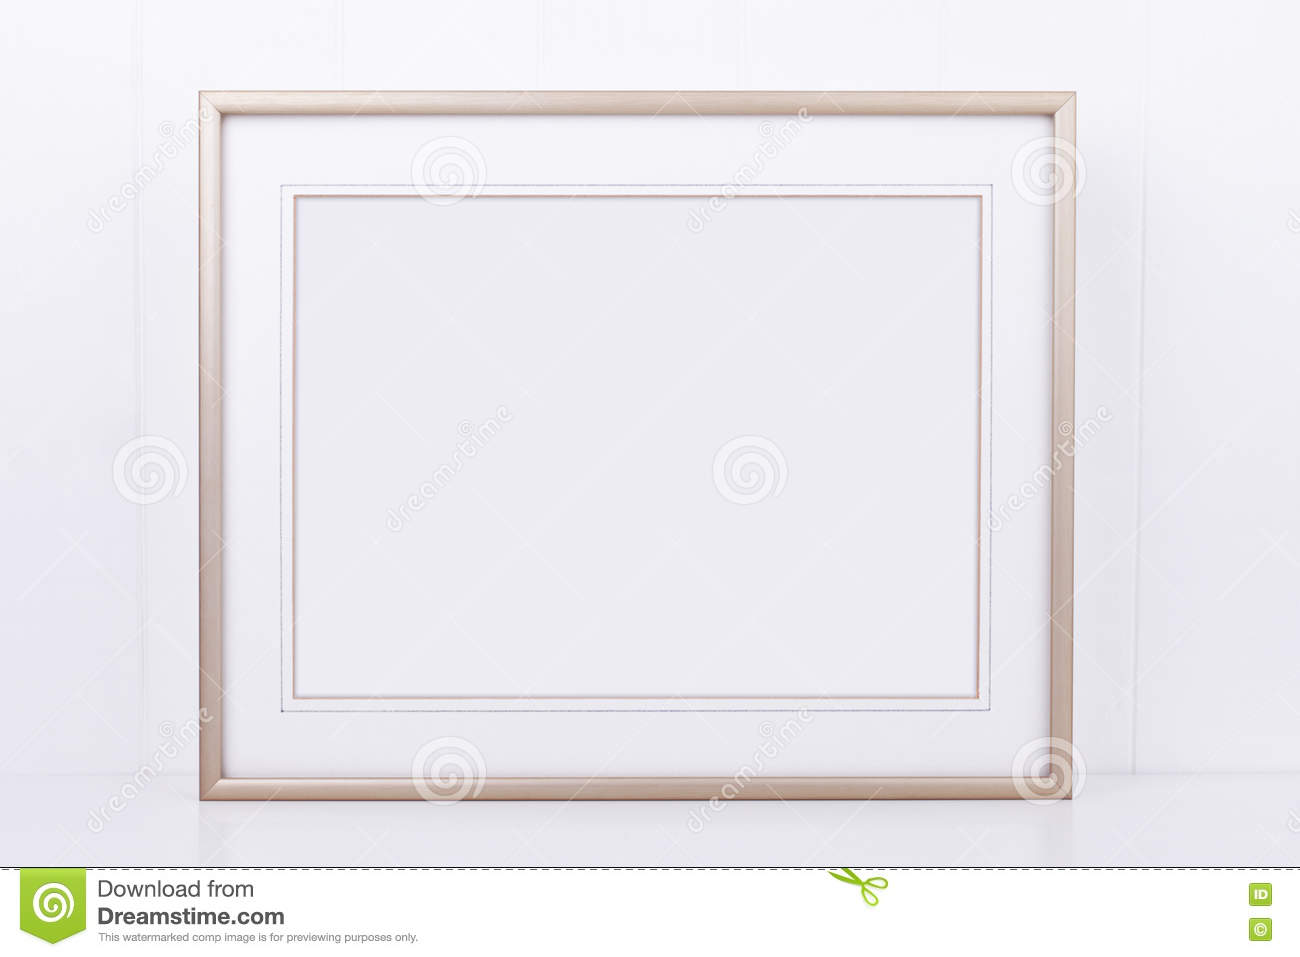 Mockup Styled Stock Photography With Landscape Gold Frame Stock ...